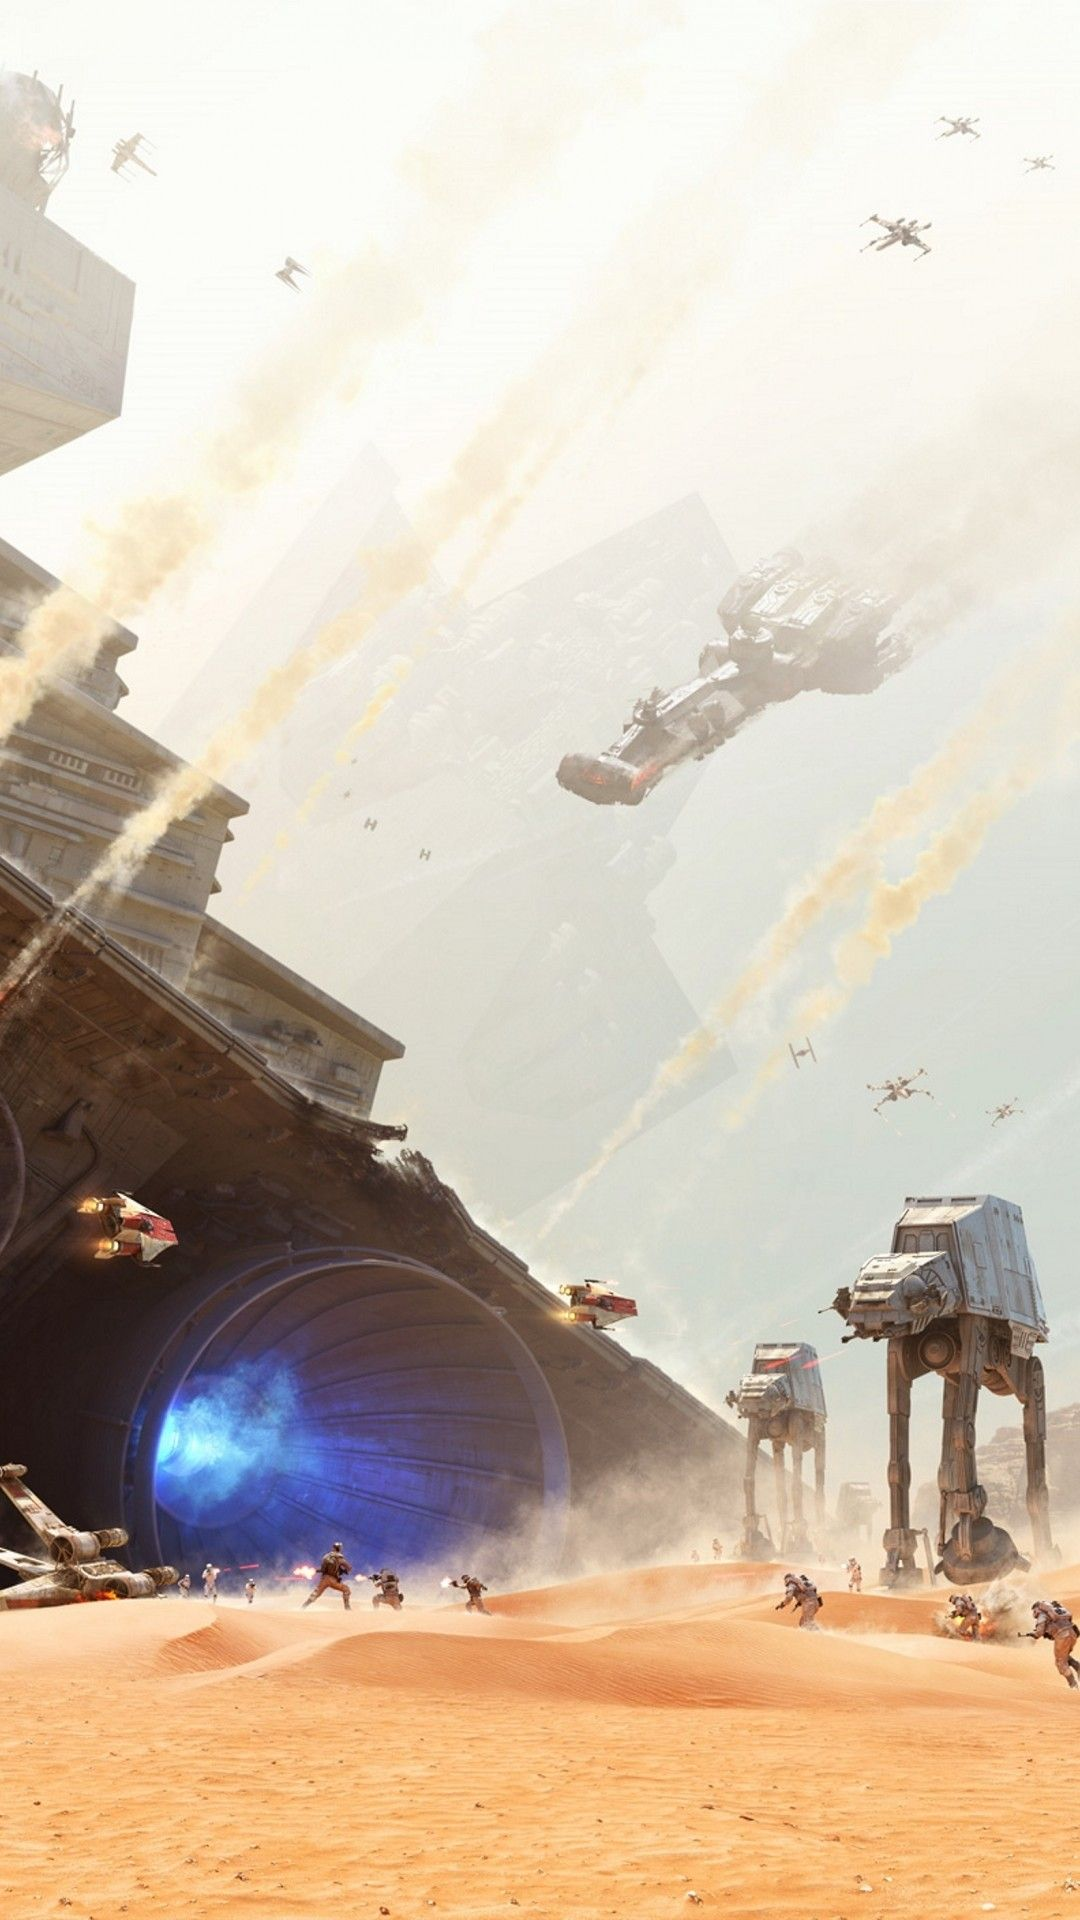 115 Star Wars Space Battle Android Iphone Desktop Hd Backgrounds Wallpapers 1080p 4k 1080x1920 2020